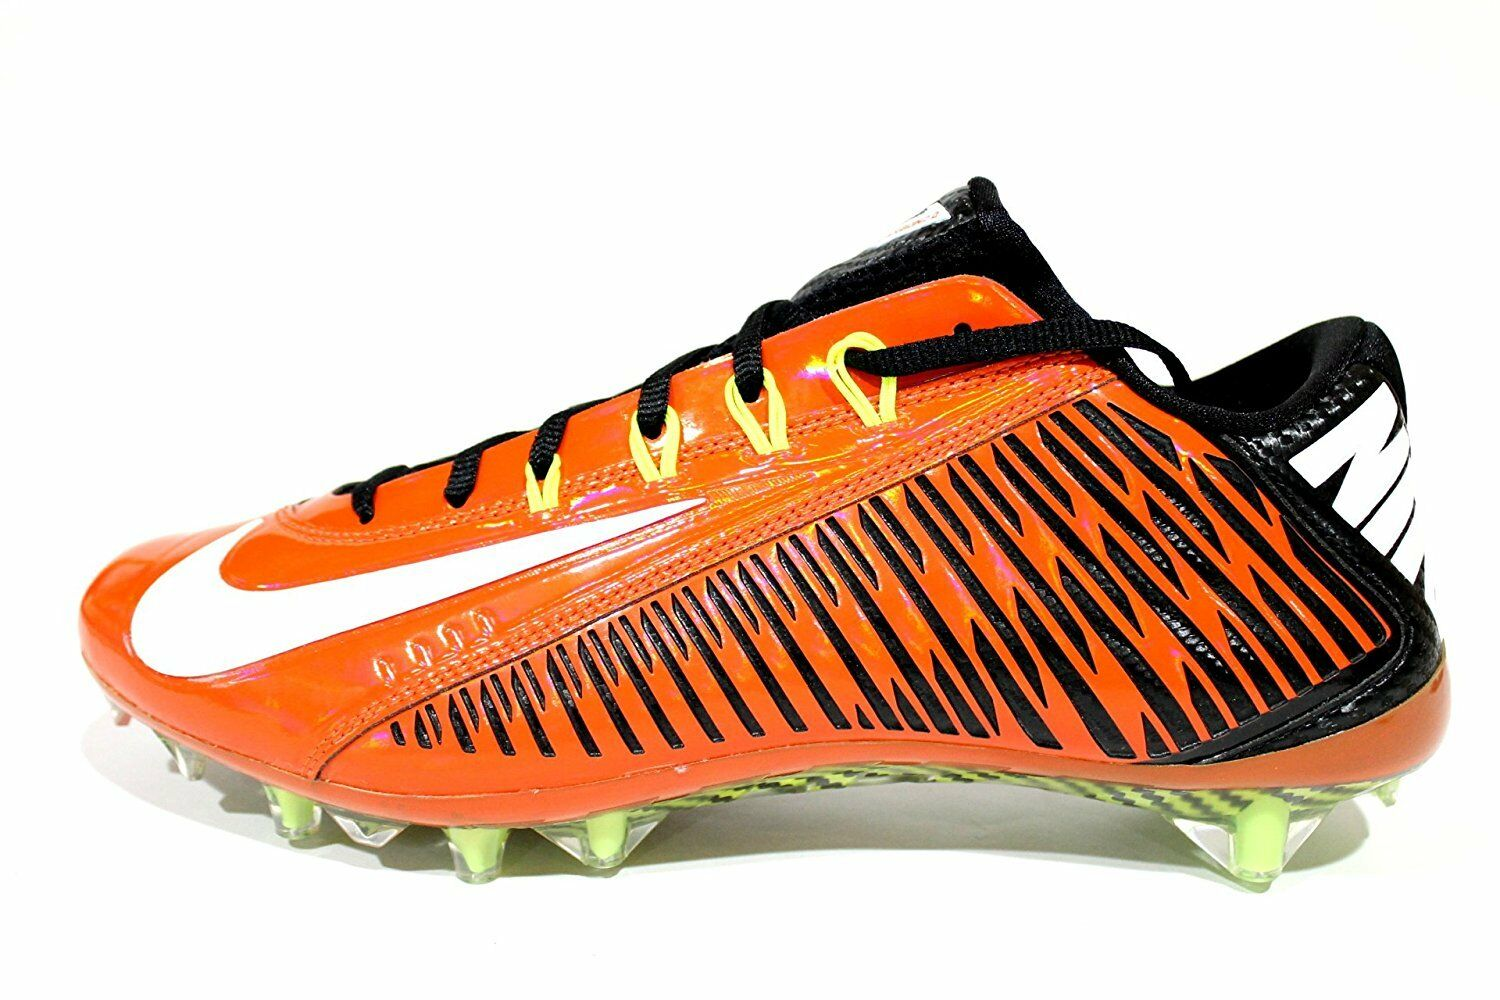 New Nike Vapor Vapor Vapor Carbon Elite 2014 TD Men's 12 Football Cleats Orange Flash White 24d552